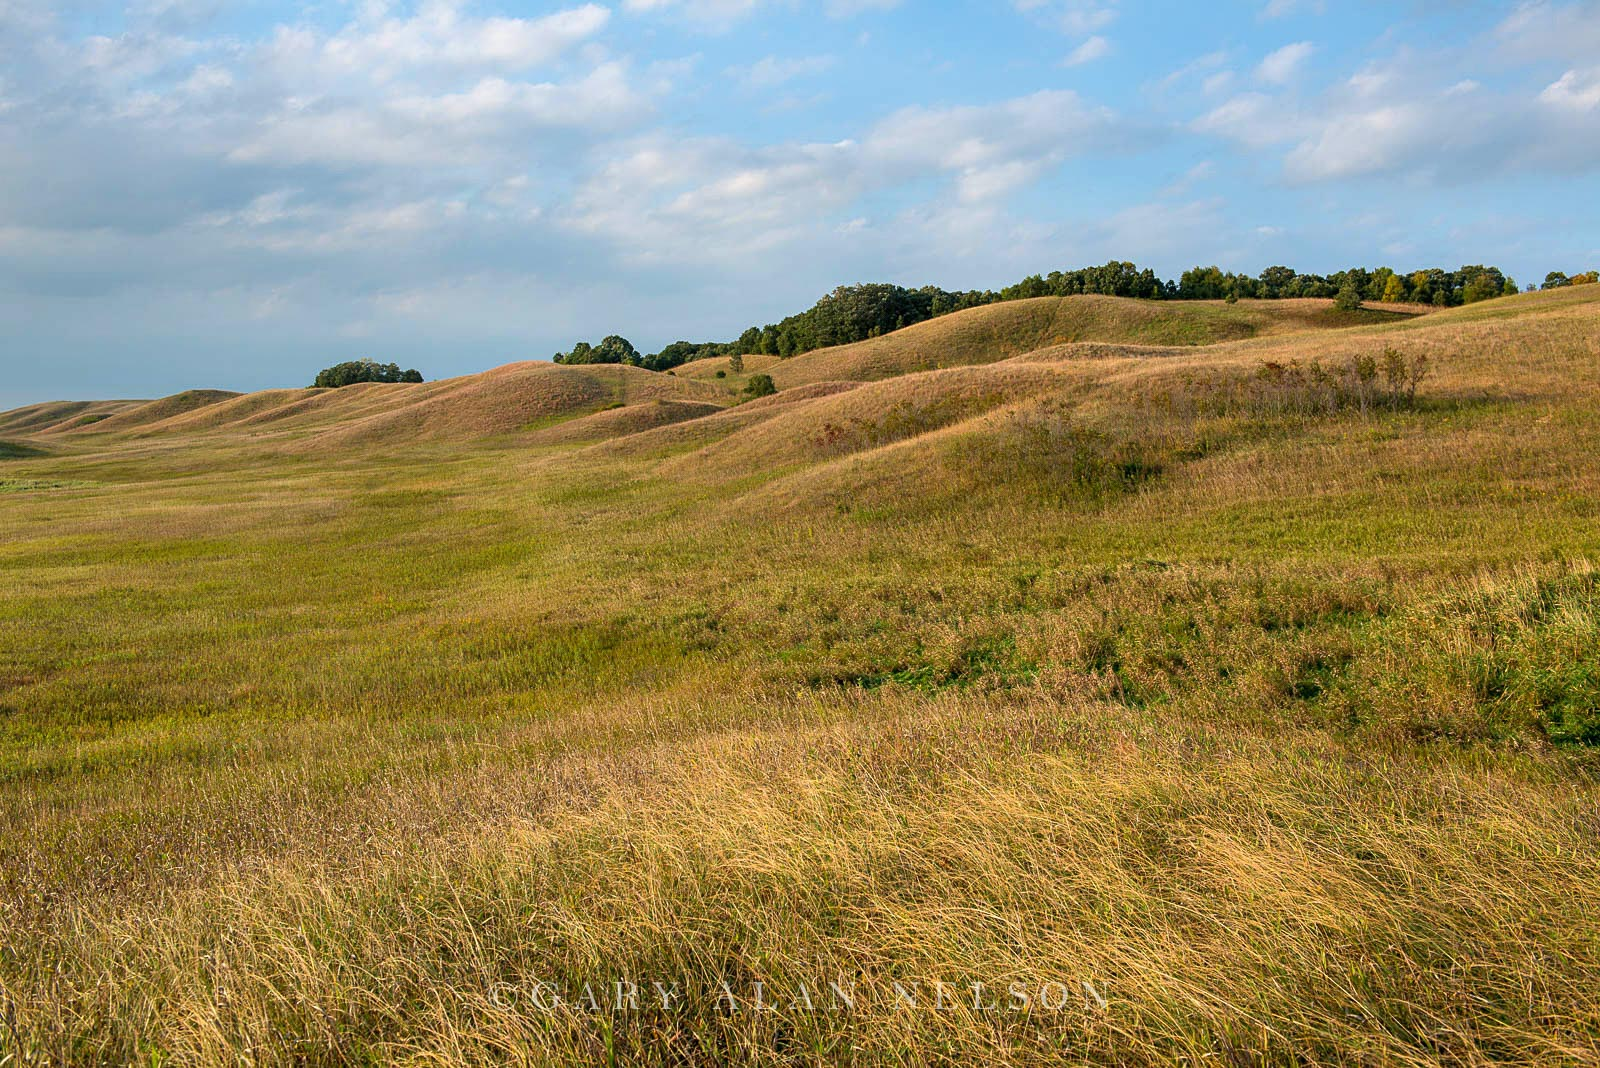 Rolling glacial moraine on the prairie, Glacial Lakes State Park, Minnesota